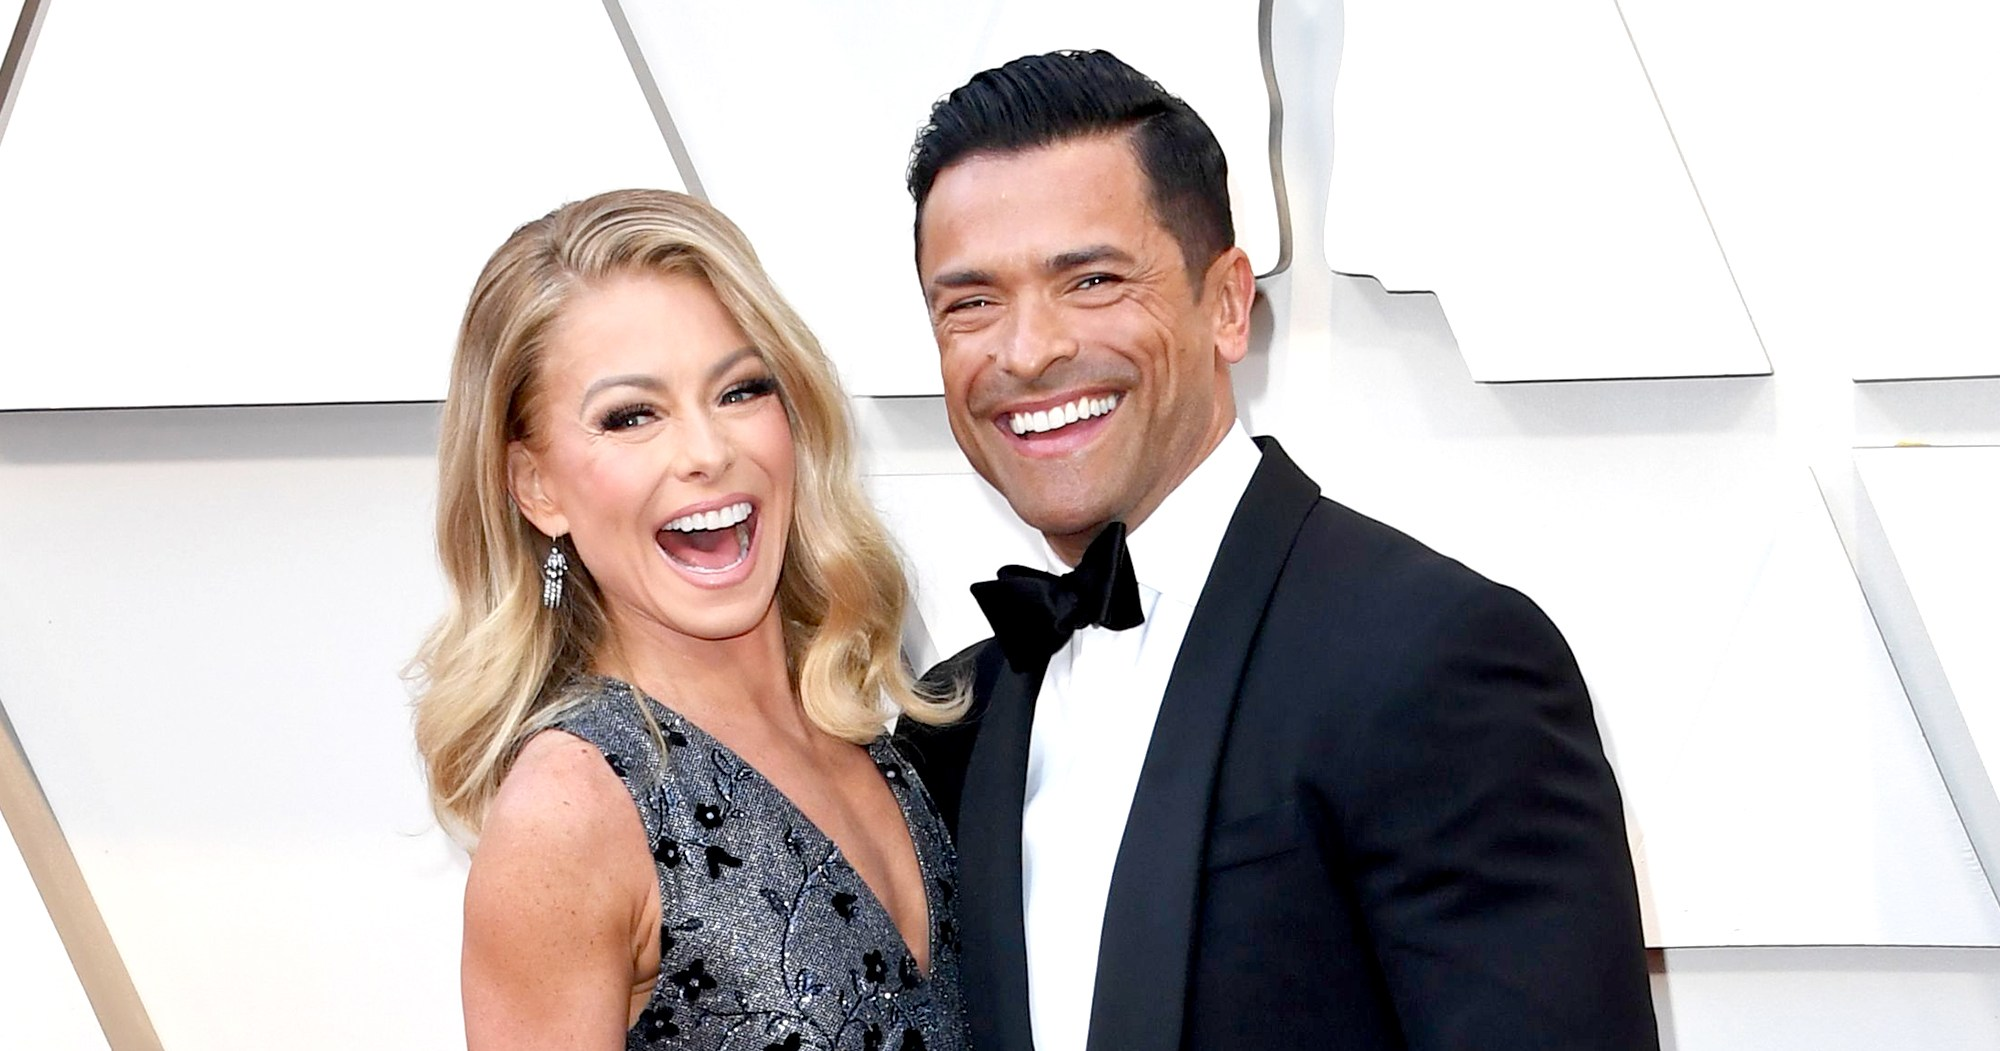 Kelly Ripa: I Tried Convincing Mark Conseulos to Have Another Baby